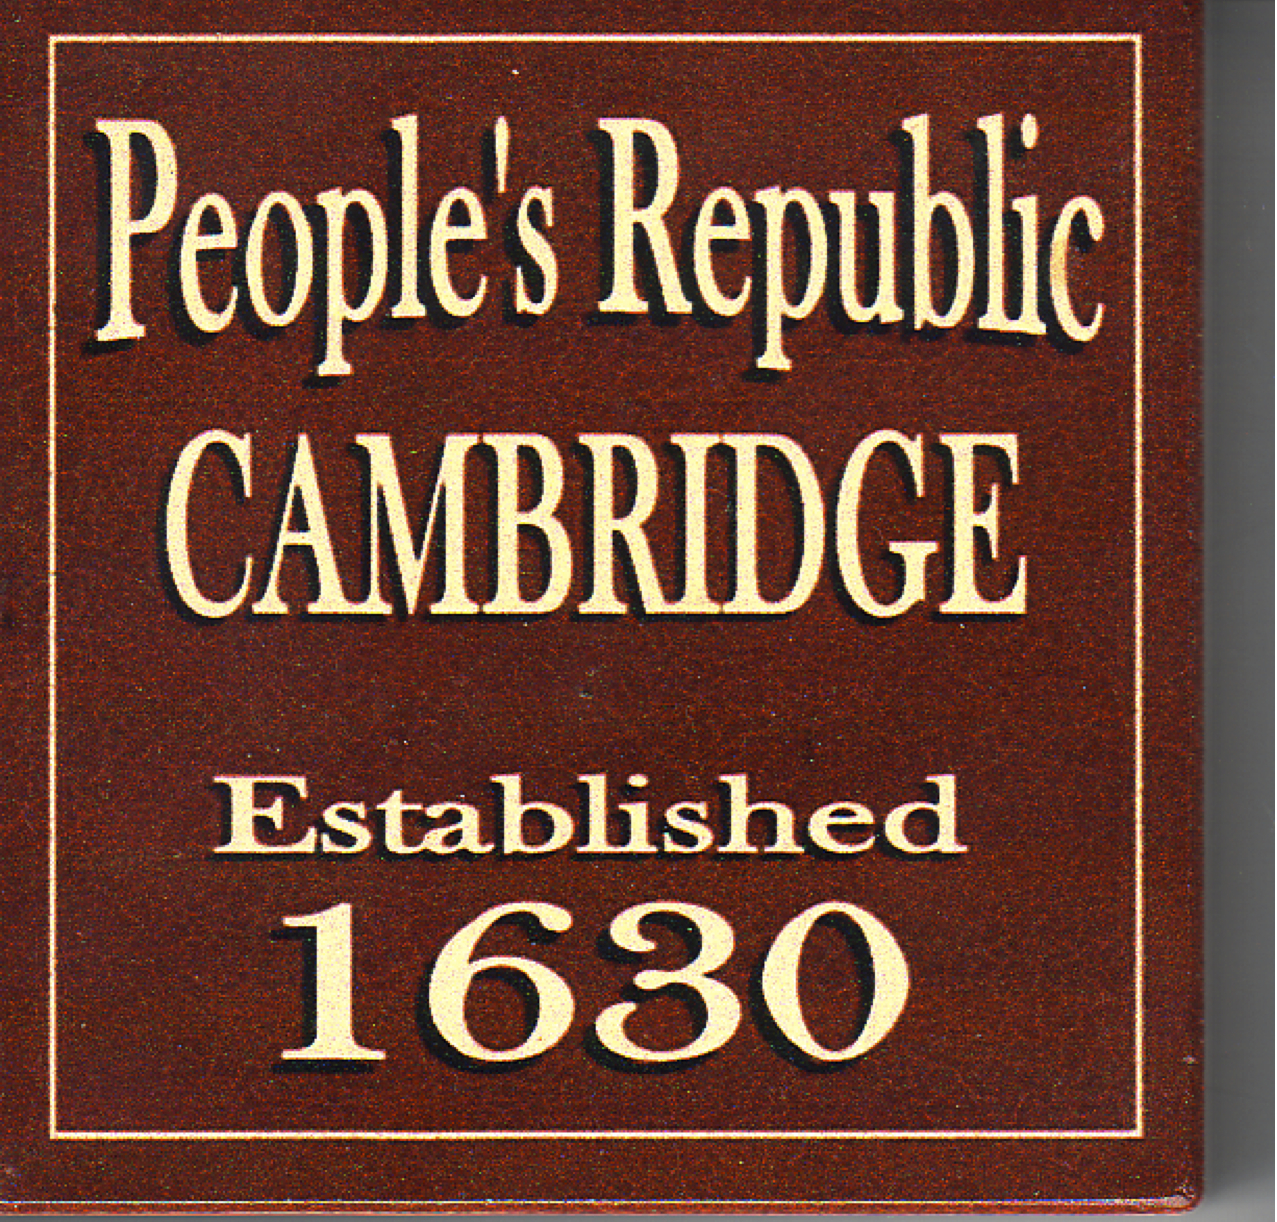 Whatever Happened to the Peoples Republic of Cambridge ...